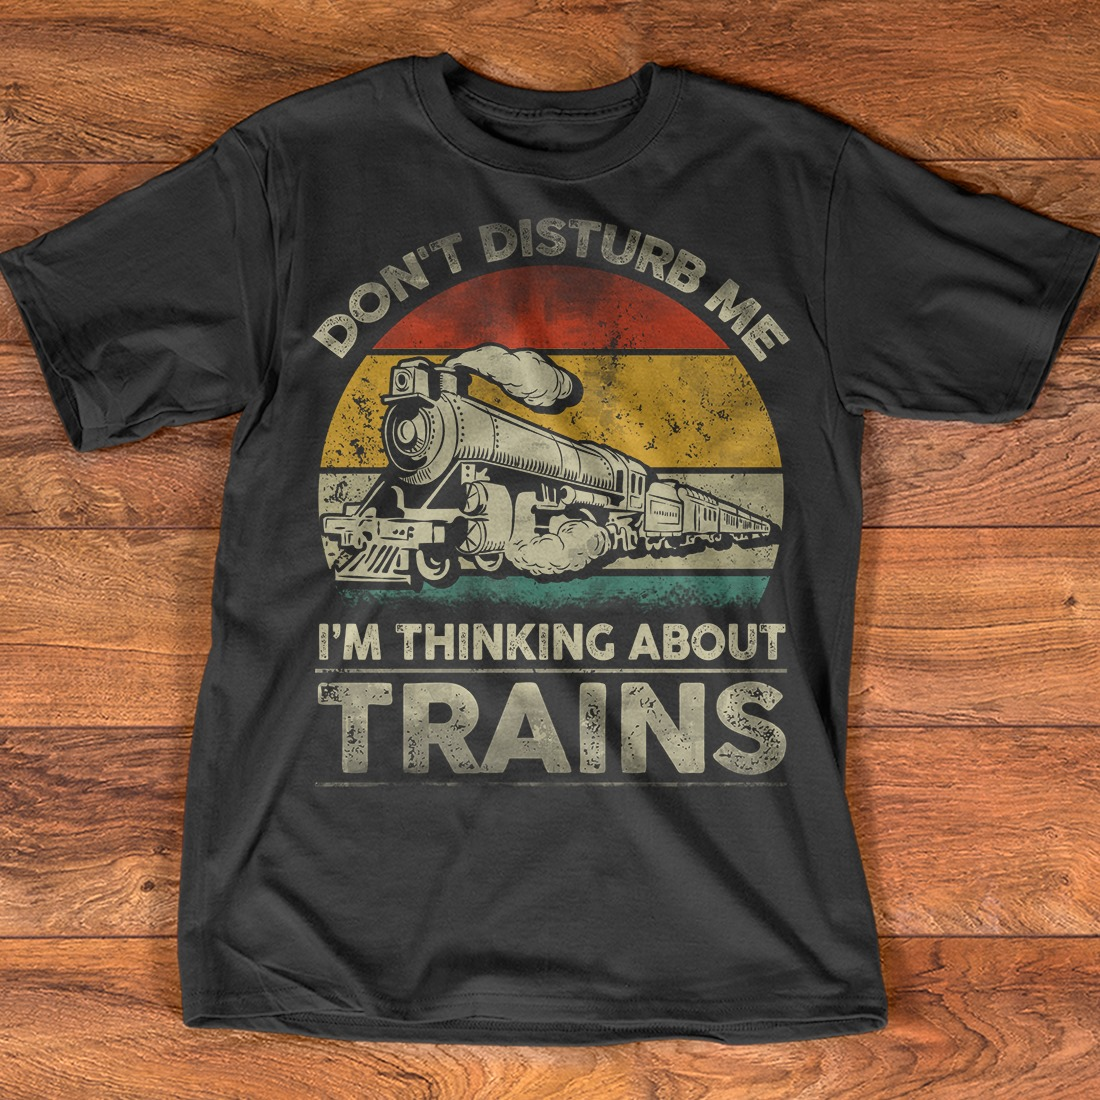 Don't disturb me I'm thinking about trains shirt